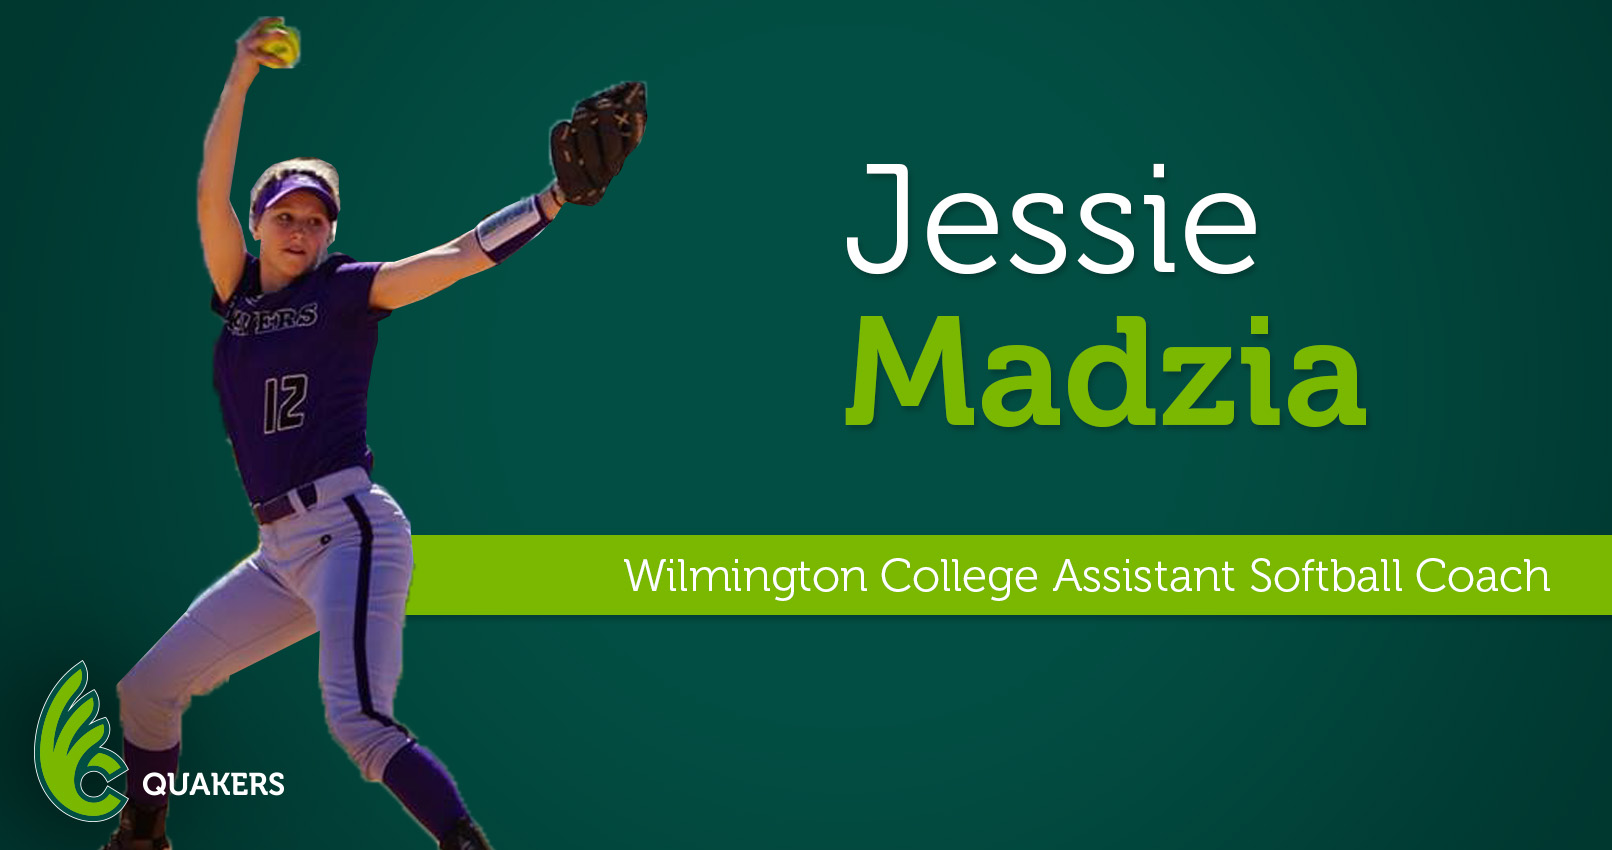 Jessie Madzia Joins Softball Program as Assistant Coach